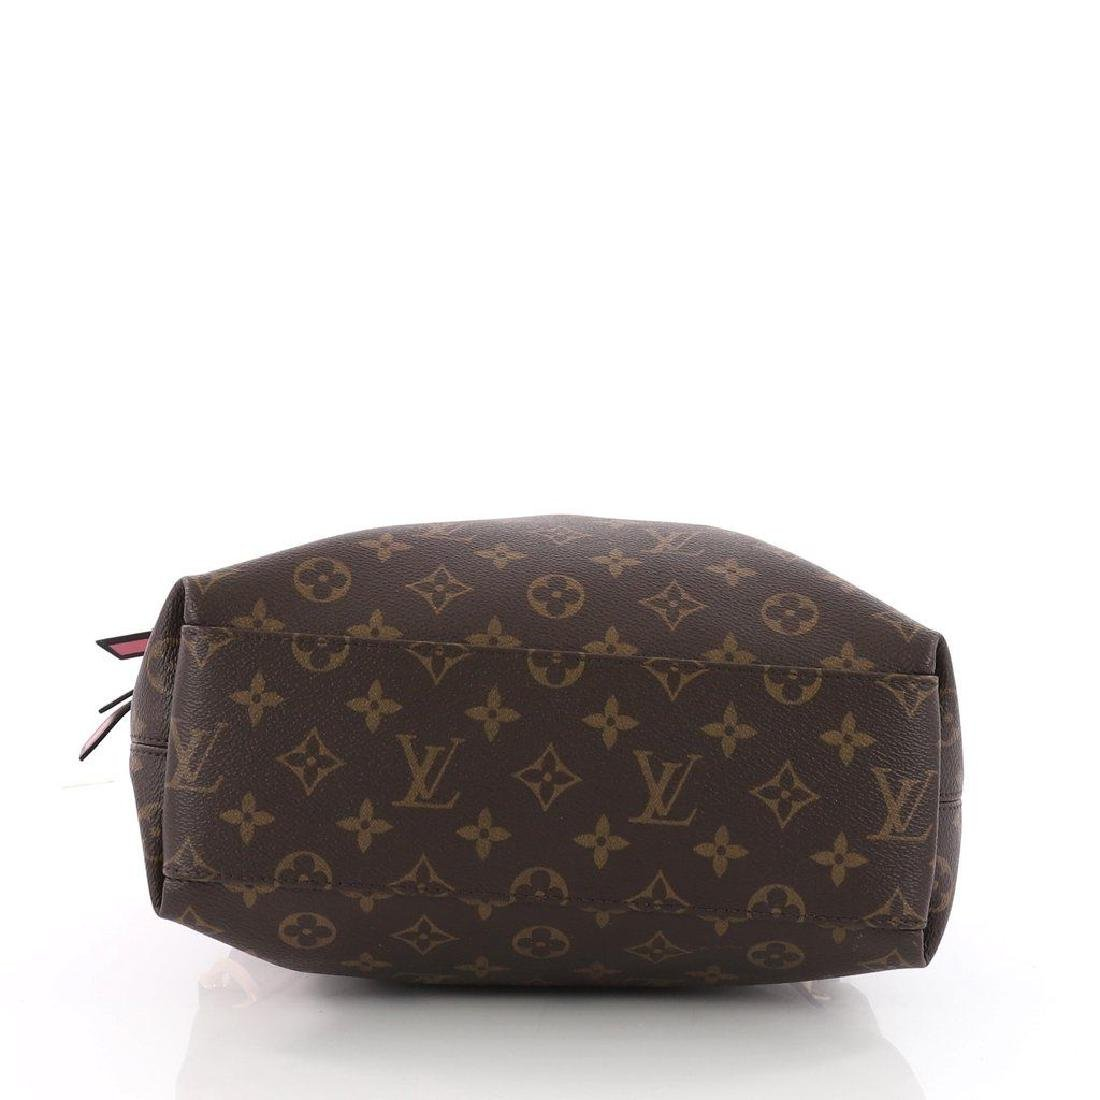 Louis Vuitton Tuileries Besace Bag with Strap in Olive - 7